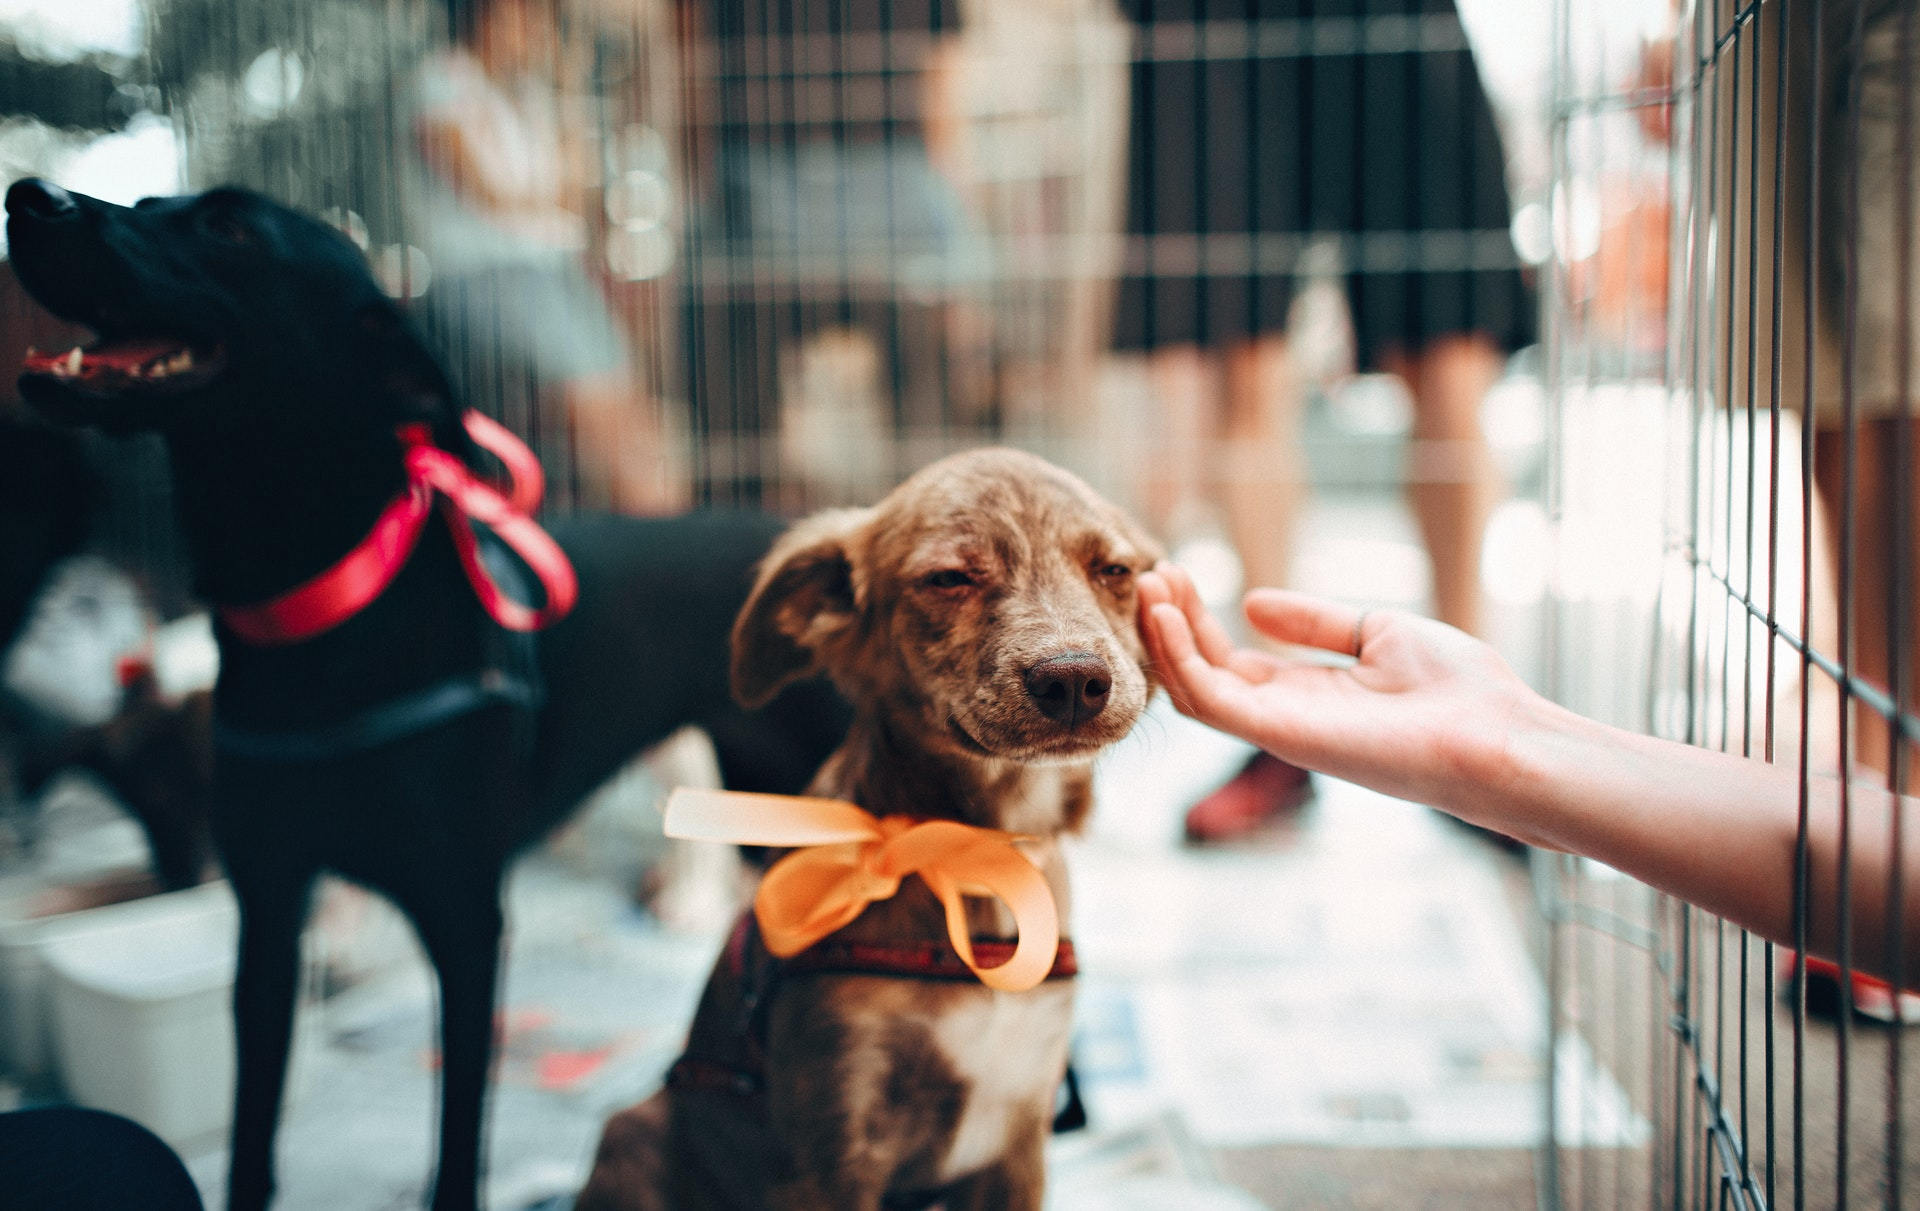 How to help save a shelter animal